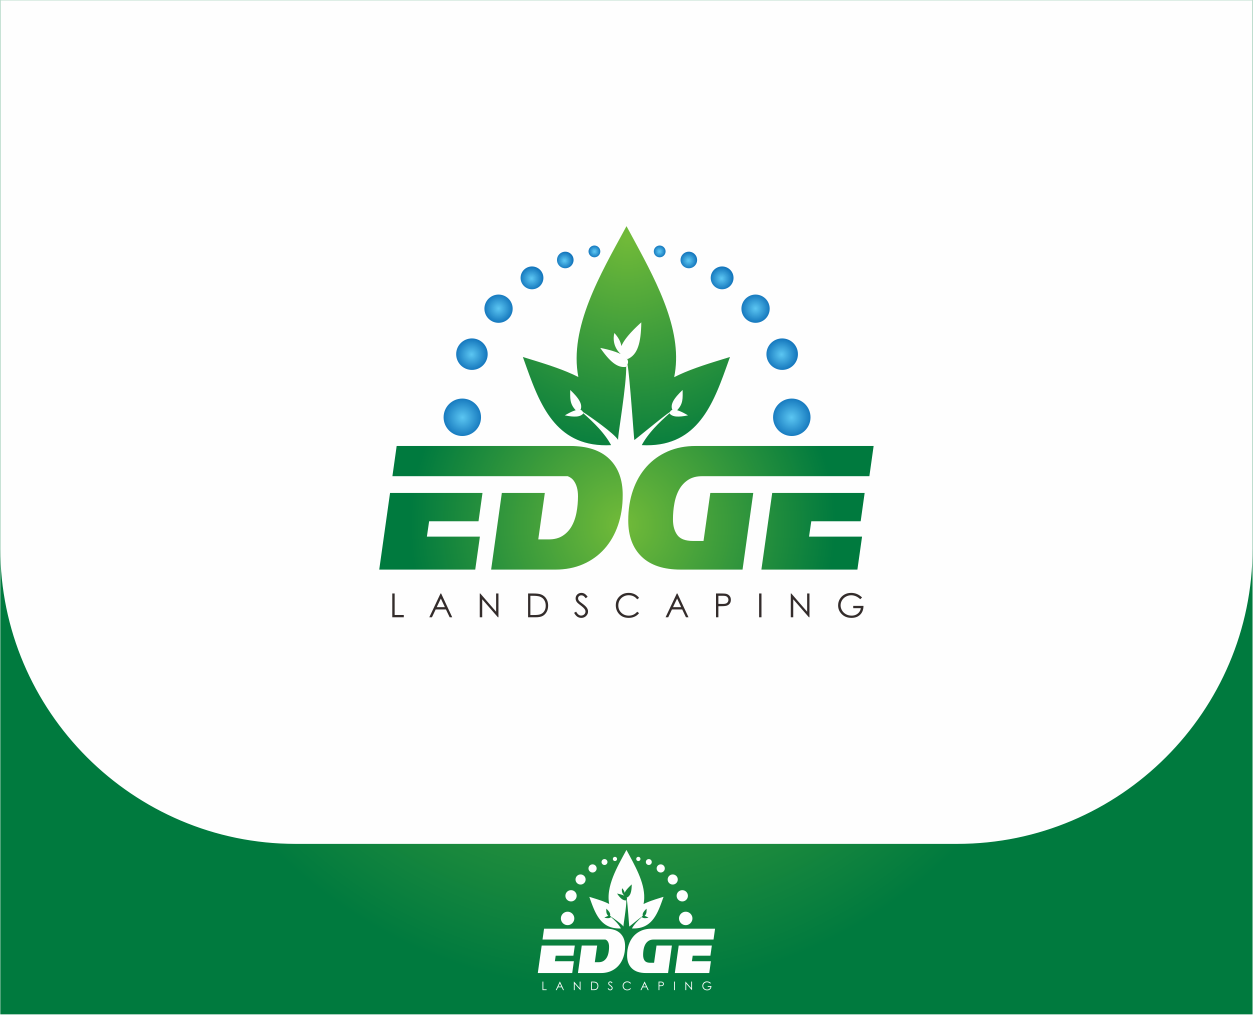 Logo Design by Armada Jamaluddin - Entry No. 222 in the Logo Design Contest Inspiring Logo Design for Edge Landscaping.